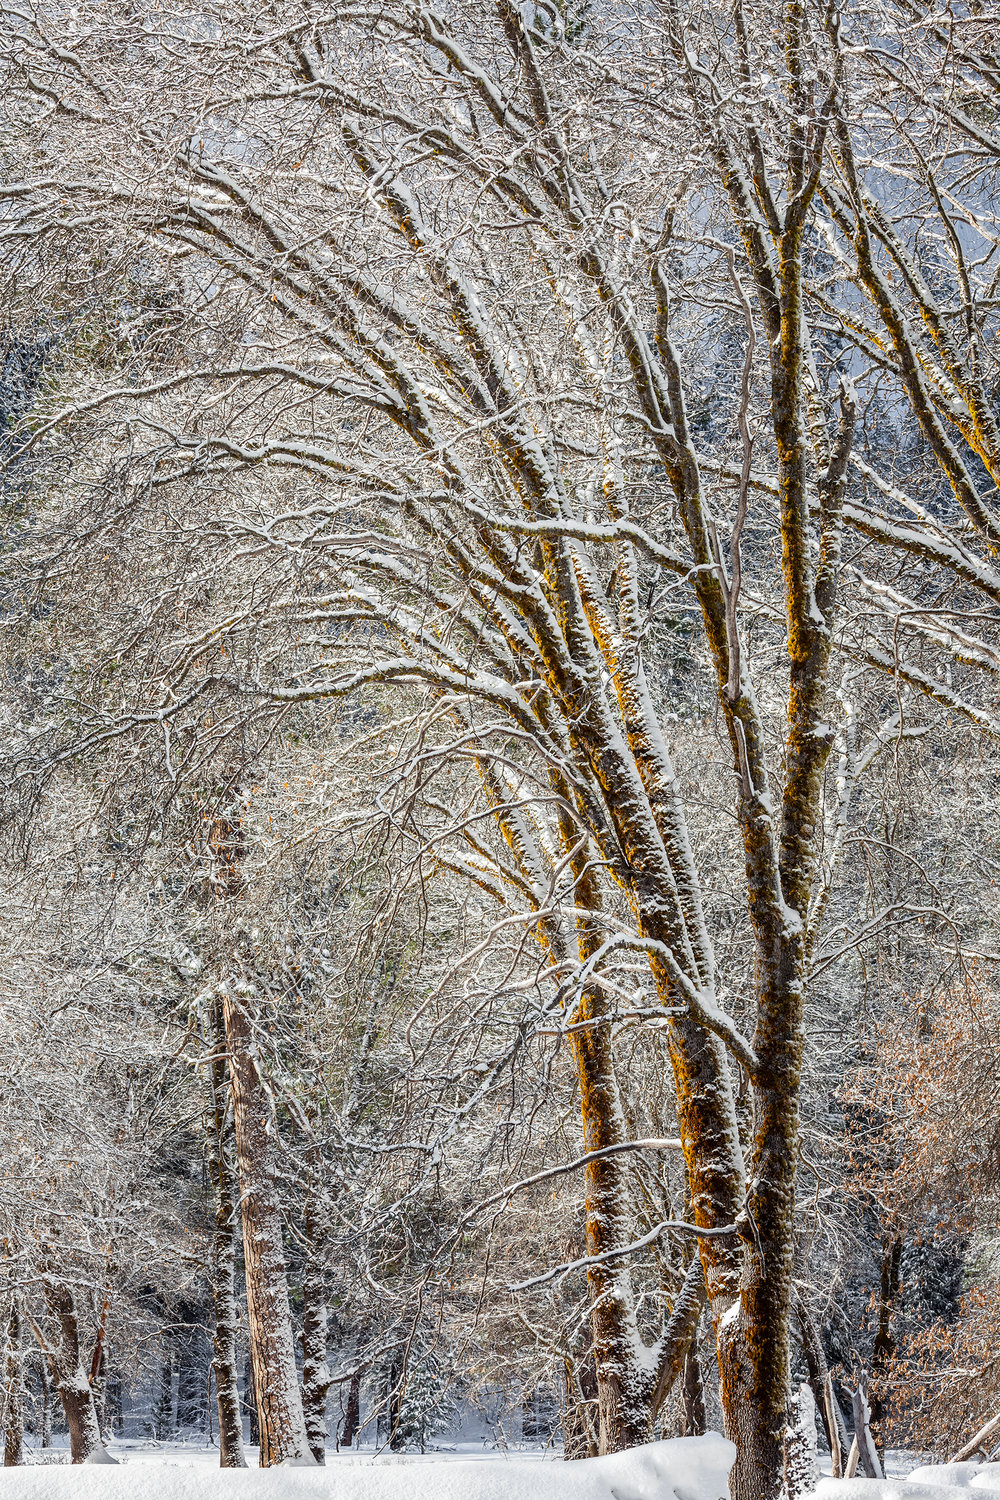 Black Oaks & Snow (9501)